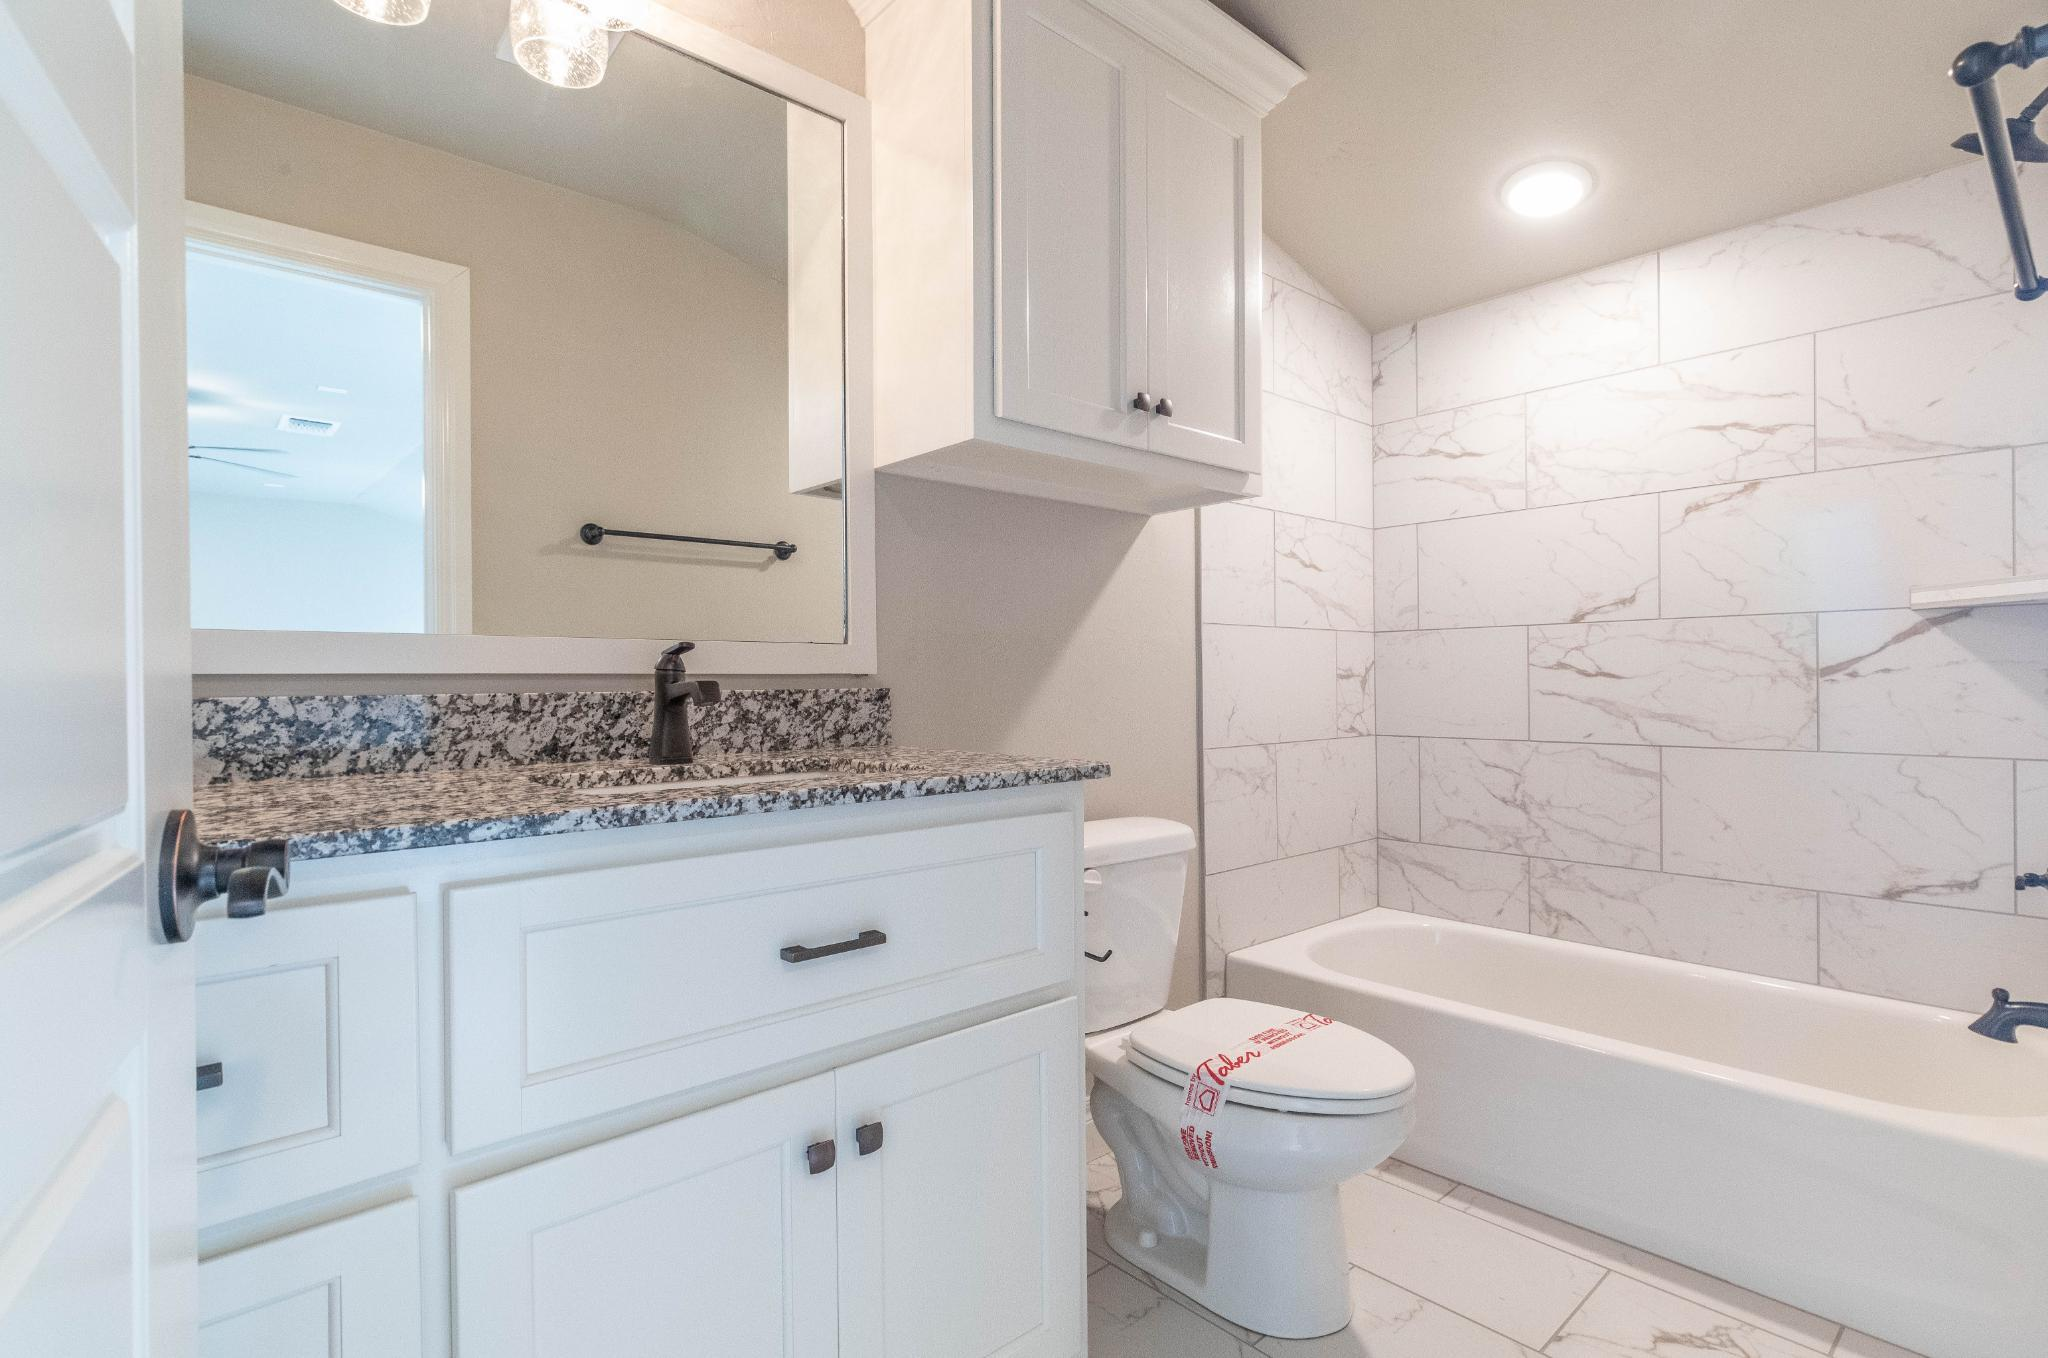 Bathroom featured in the Blue Spruce Bonus Room 1 Plus By Homes By Taber in Oklahoma City, OK